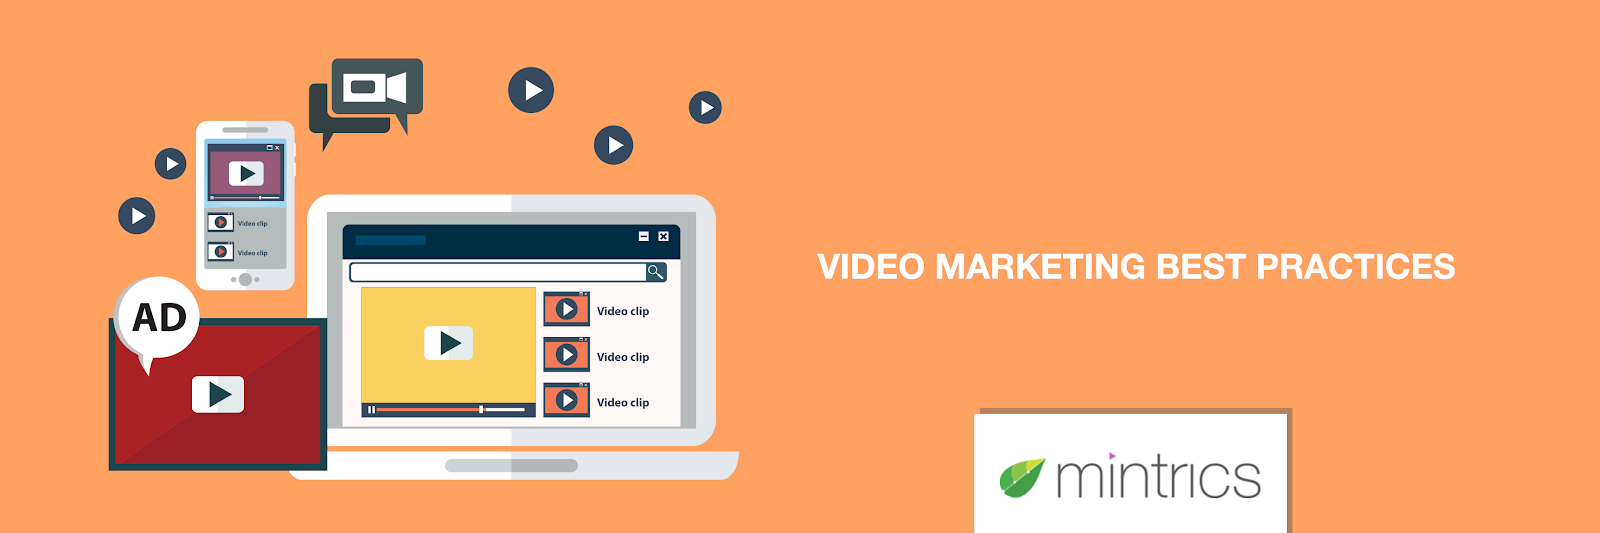 video marketing best practices